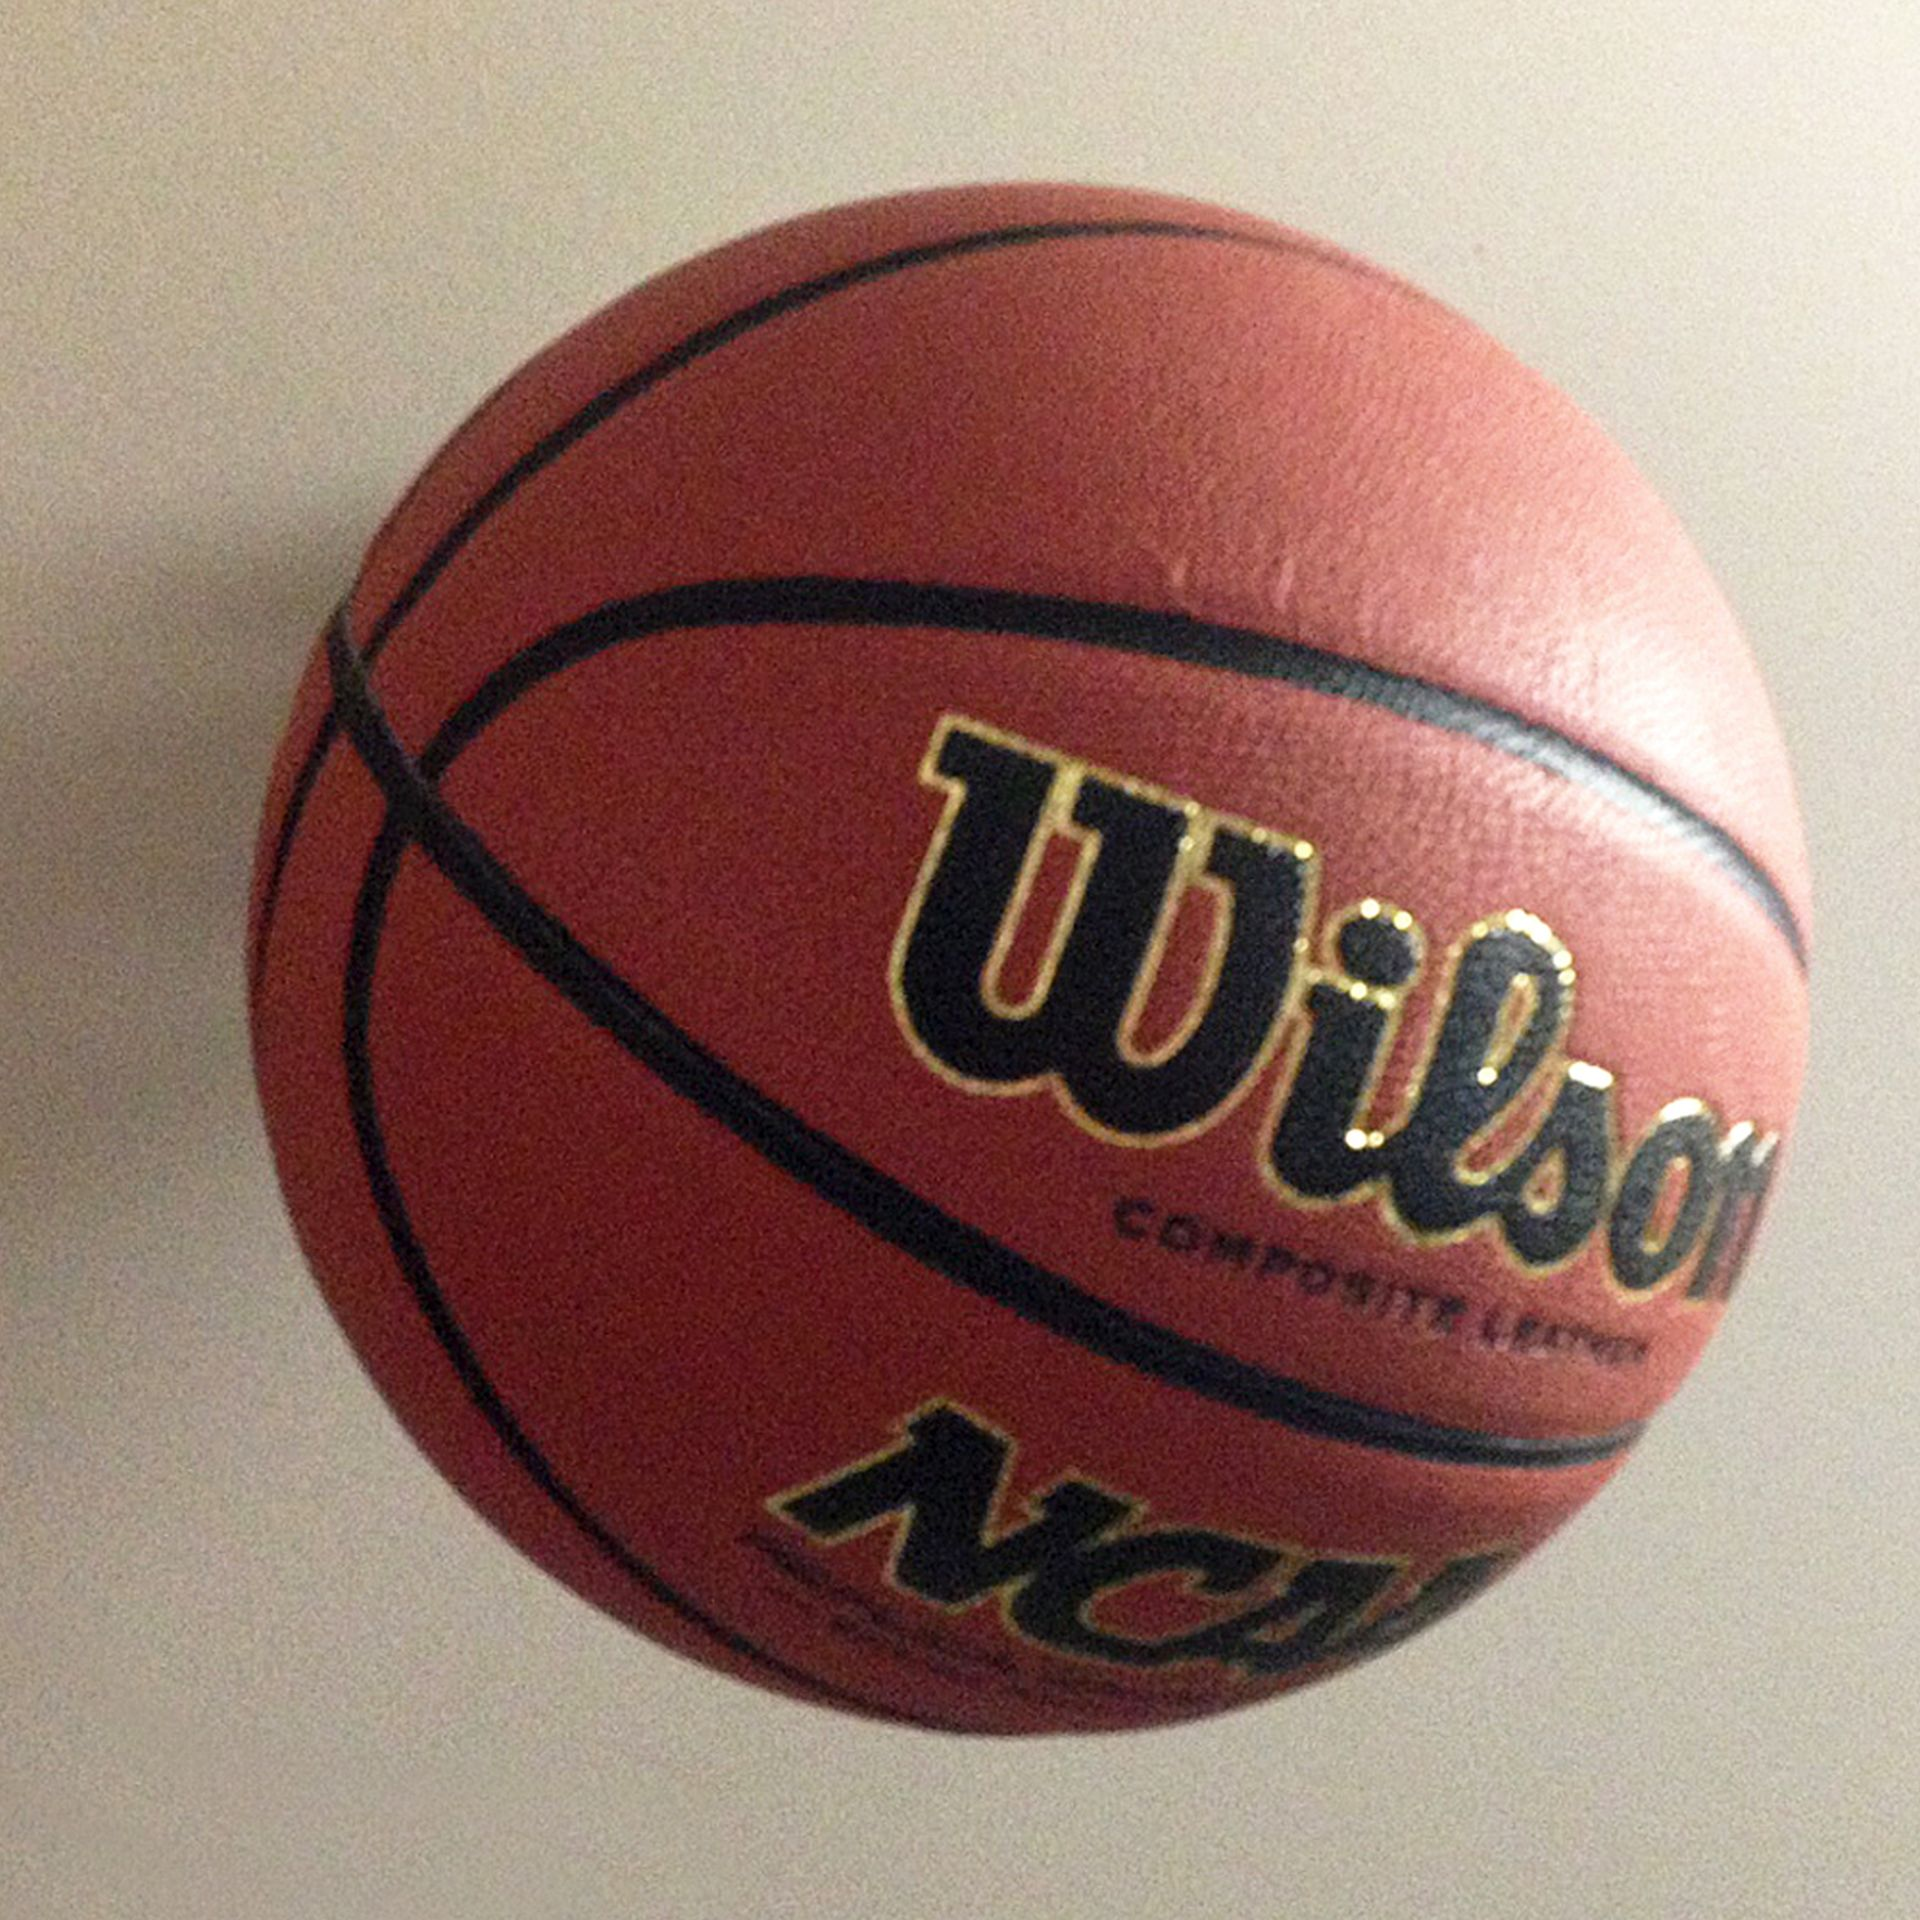 INVISI-ball Wall Mount - Basketball